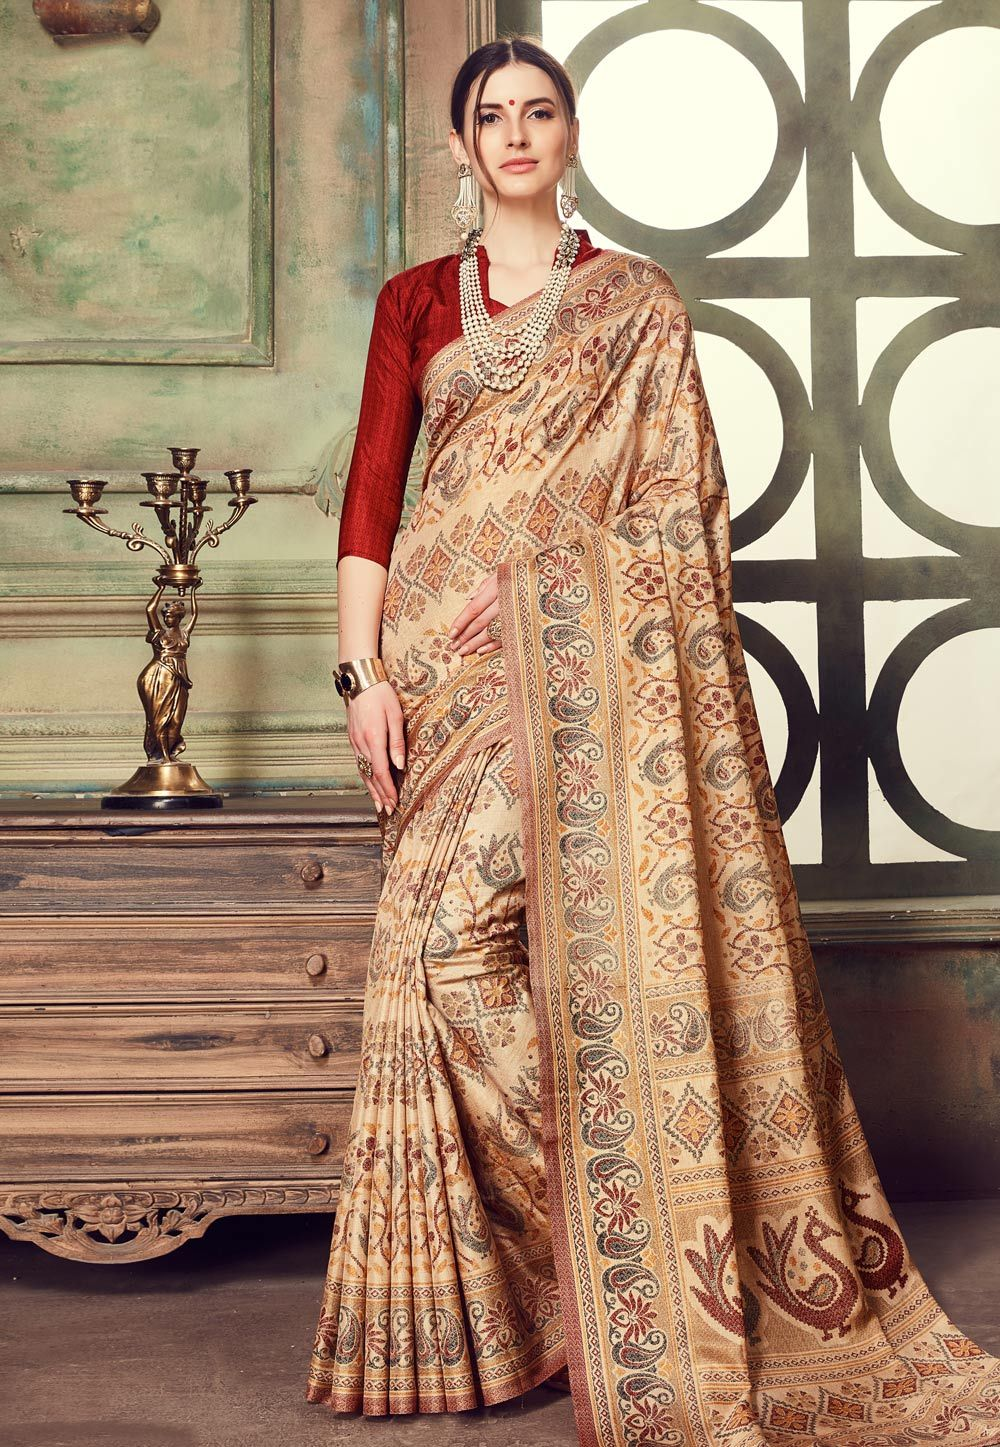 39d4f7548a Buy Beige Silk Saree With Blouse 161489 with blouse online at lowest price  from vast collection of sarees at Indianclothstore.com.